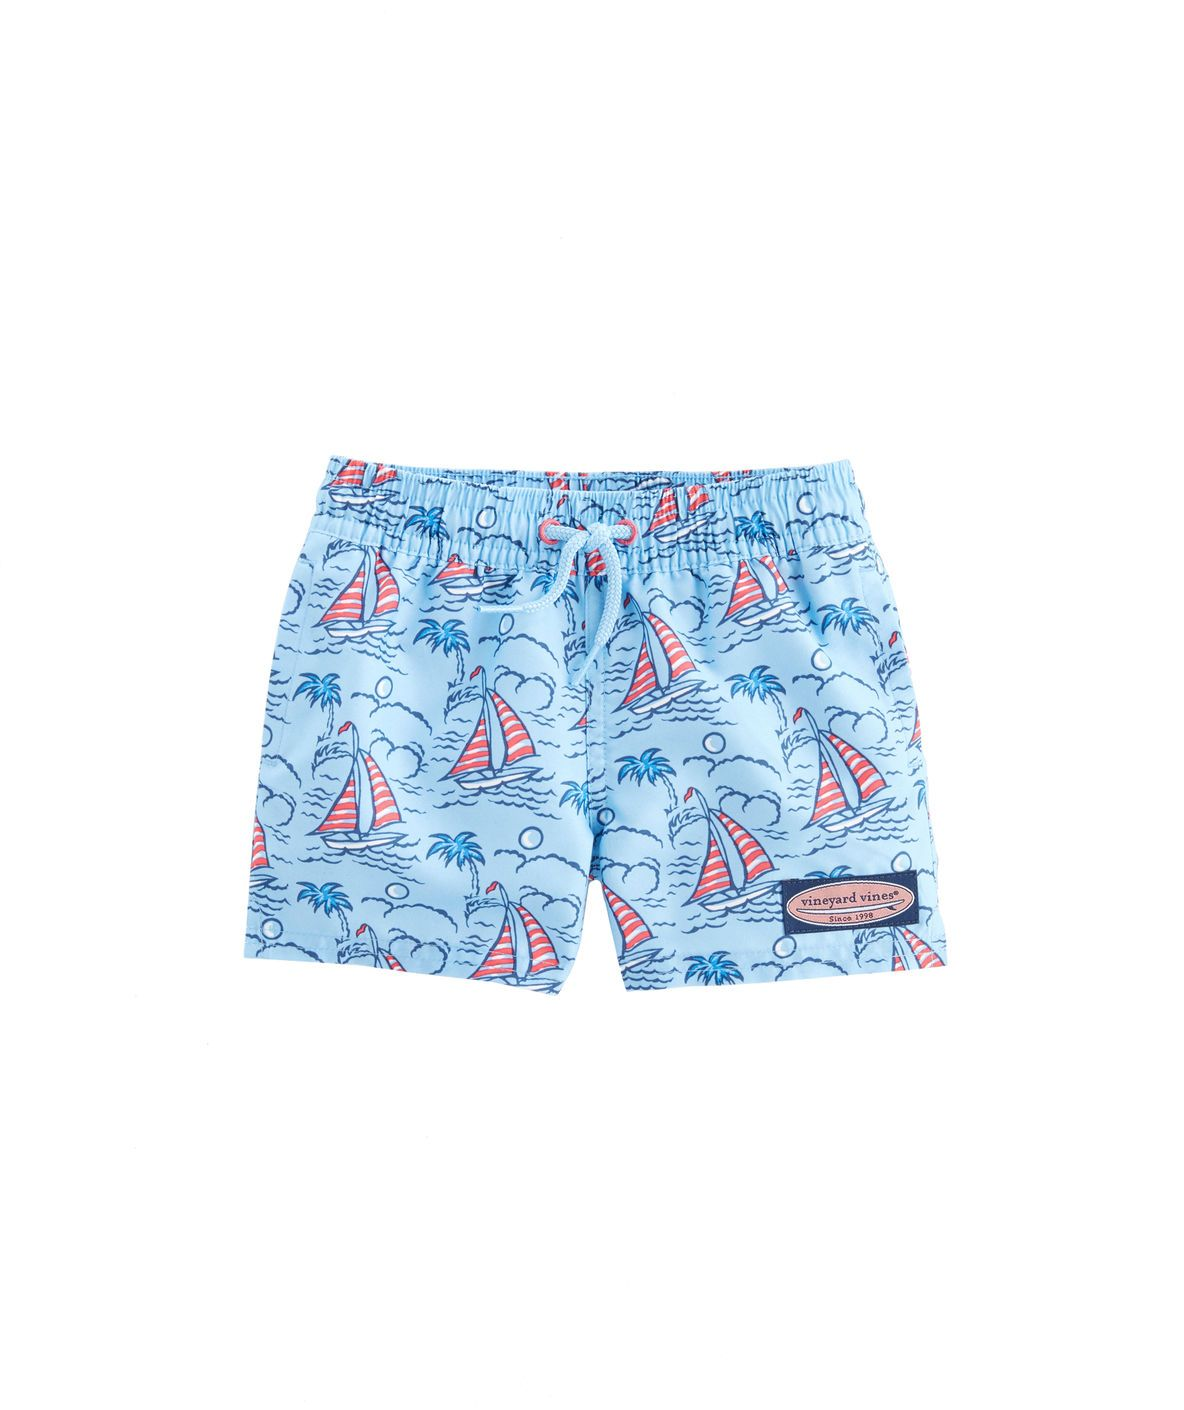 Shop Baby Boy Sailboat Chappy Trunks 3 24 At Vineyard